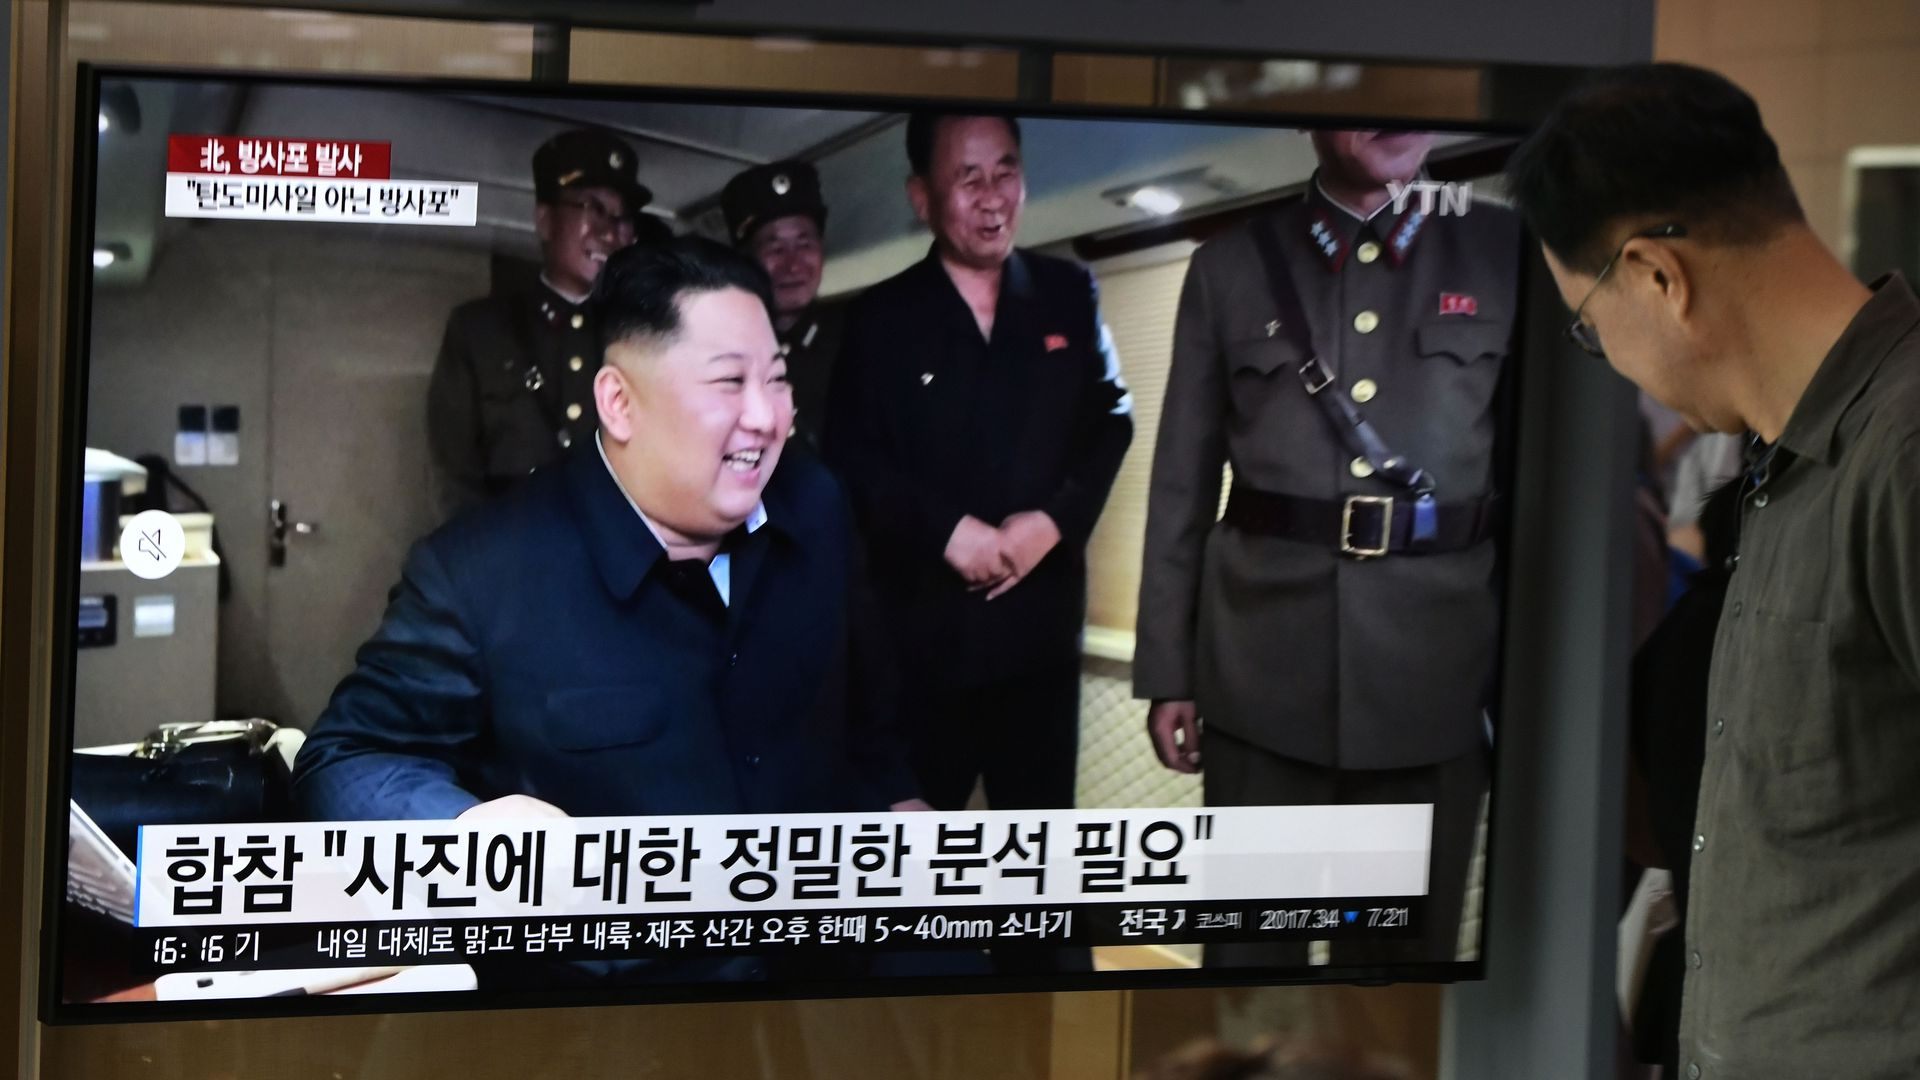 North Korea conducts satellite test for the second time in less than a week